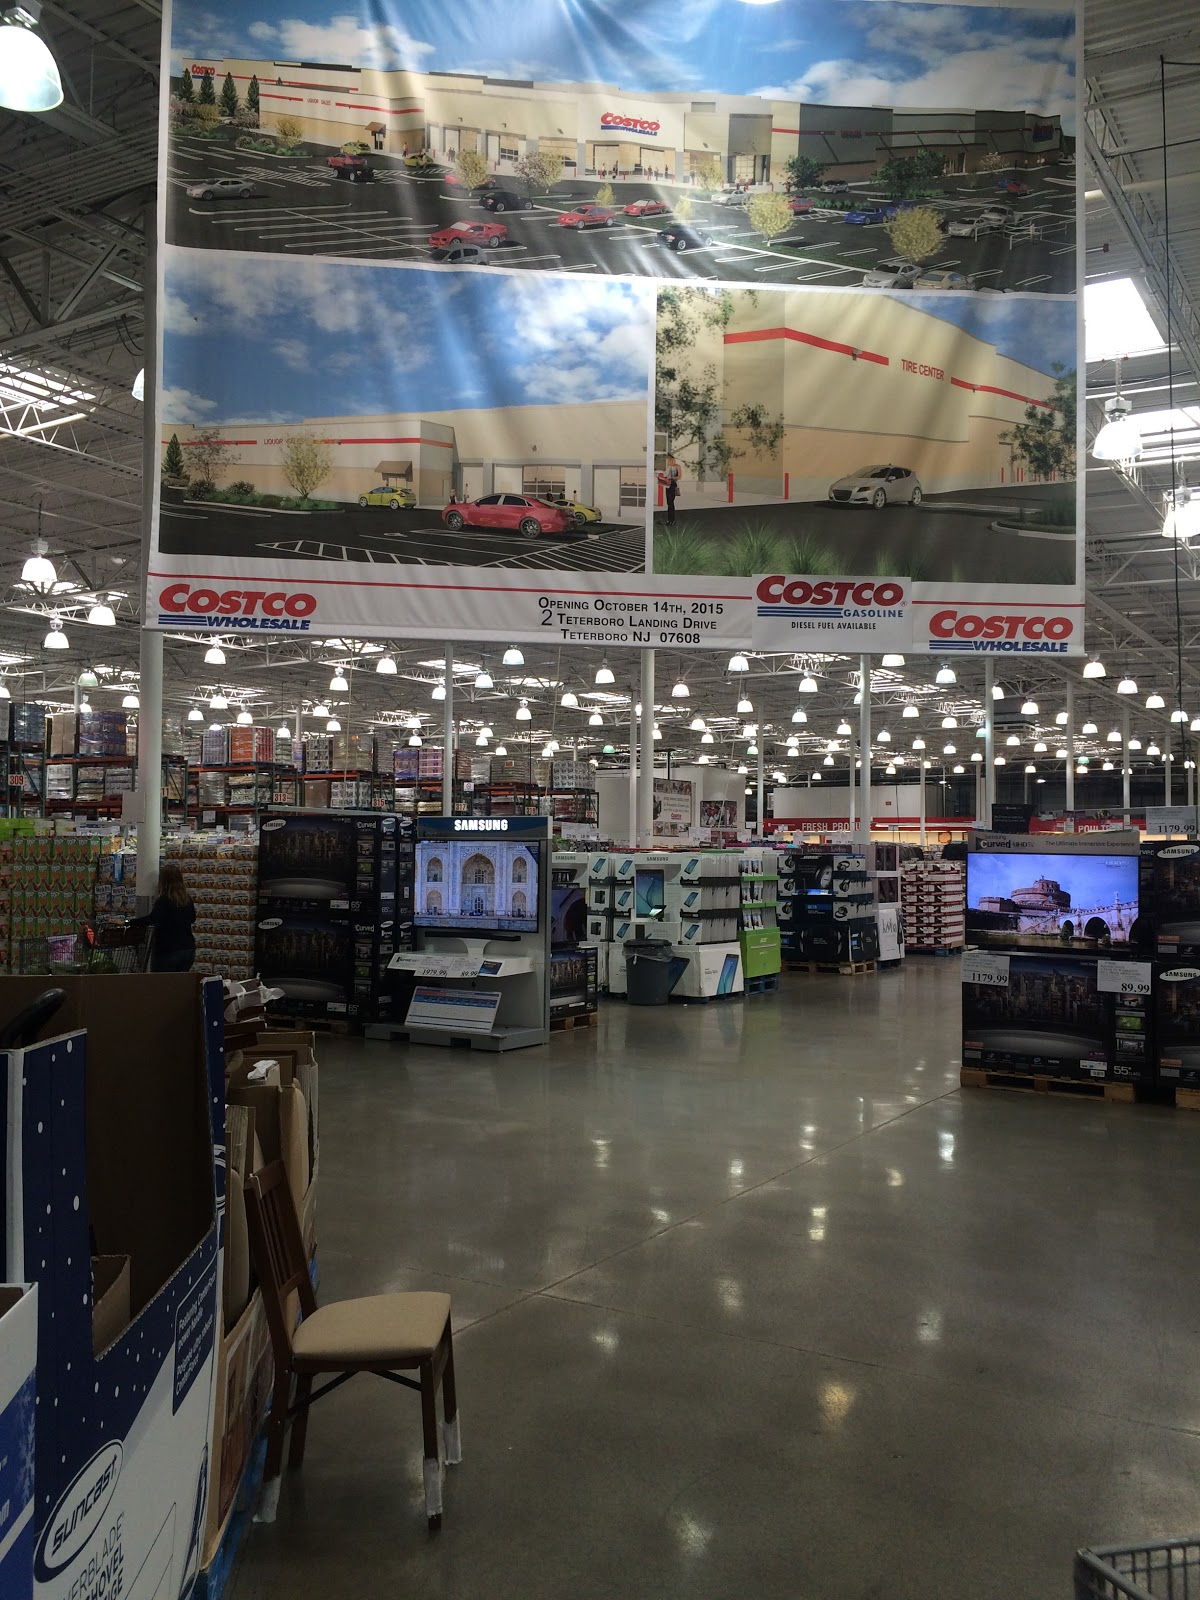 do you really know what you re eating costco offers cash cards at the costco whole in hackensack a large banner shows what the bigger teterboro store is expected to look like when it opens oct 14